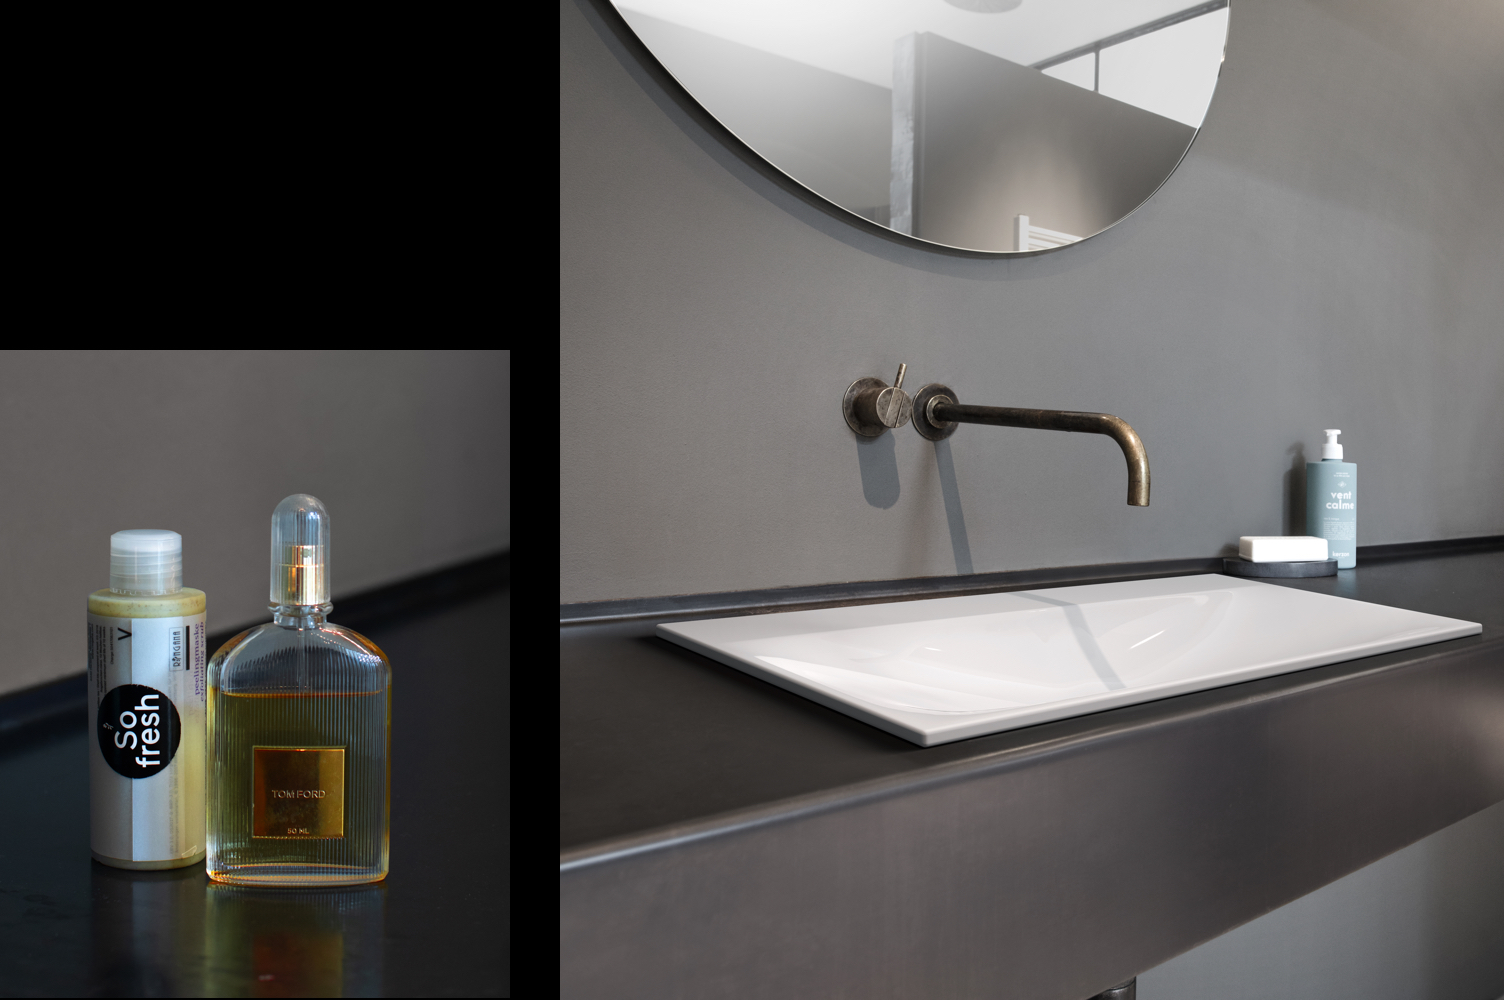 Two photos: Soap dispenser and after-shave bottle on a dark-coloured washbasin with a grey wall / Bathroom design: a white washbasin on a brown vanity unit with a grey wall